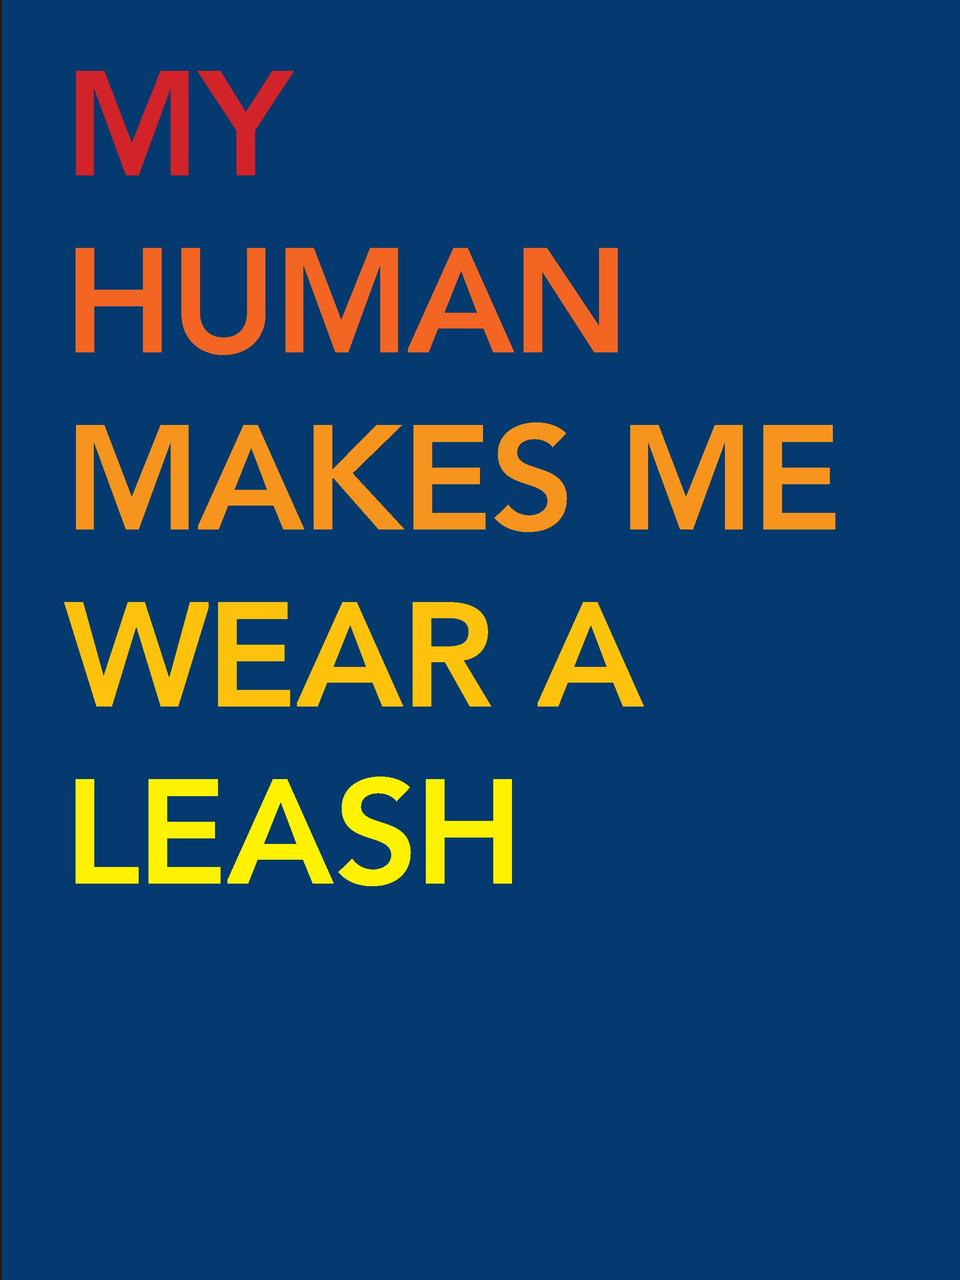 MY HUMAN MAKES ME WEAR A LEASH